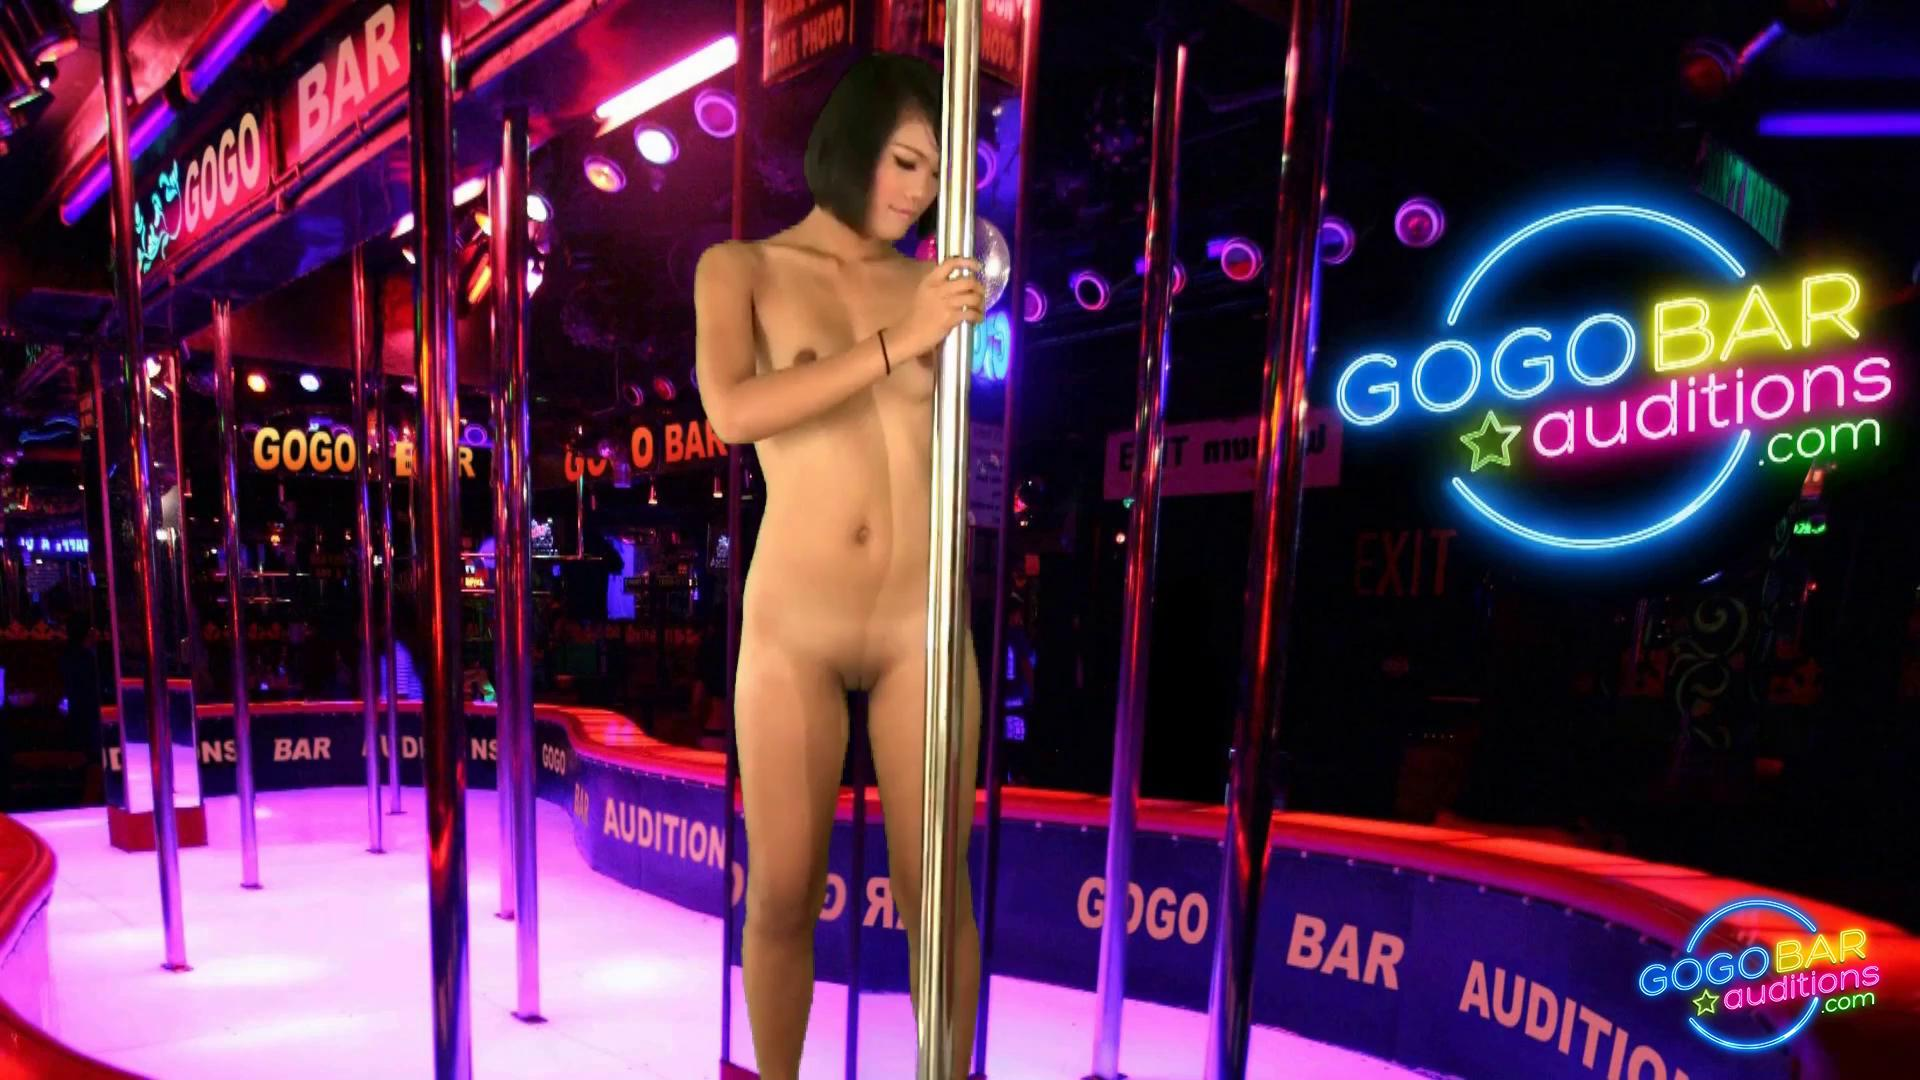 GogoBarAuditions – Waen She Gets Really Frisky When She Drinks Her Whisky